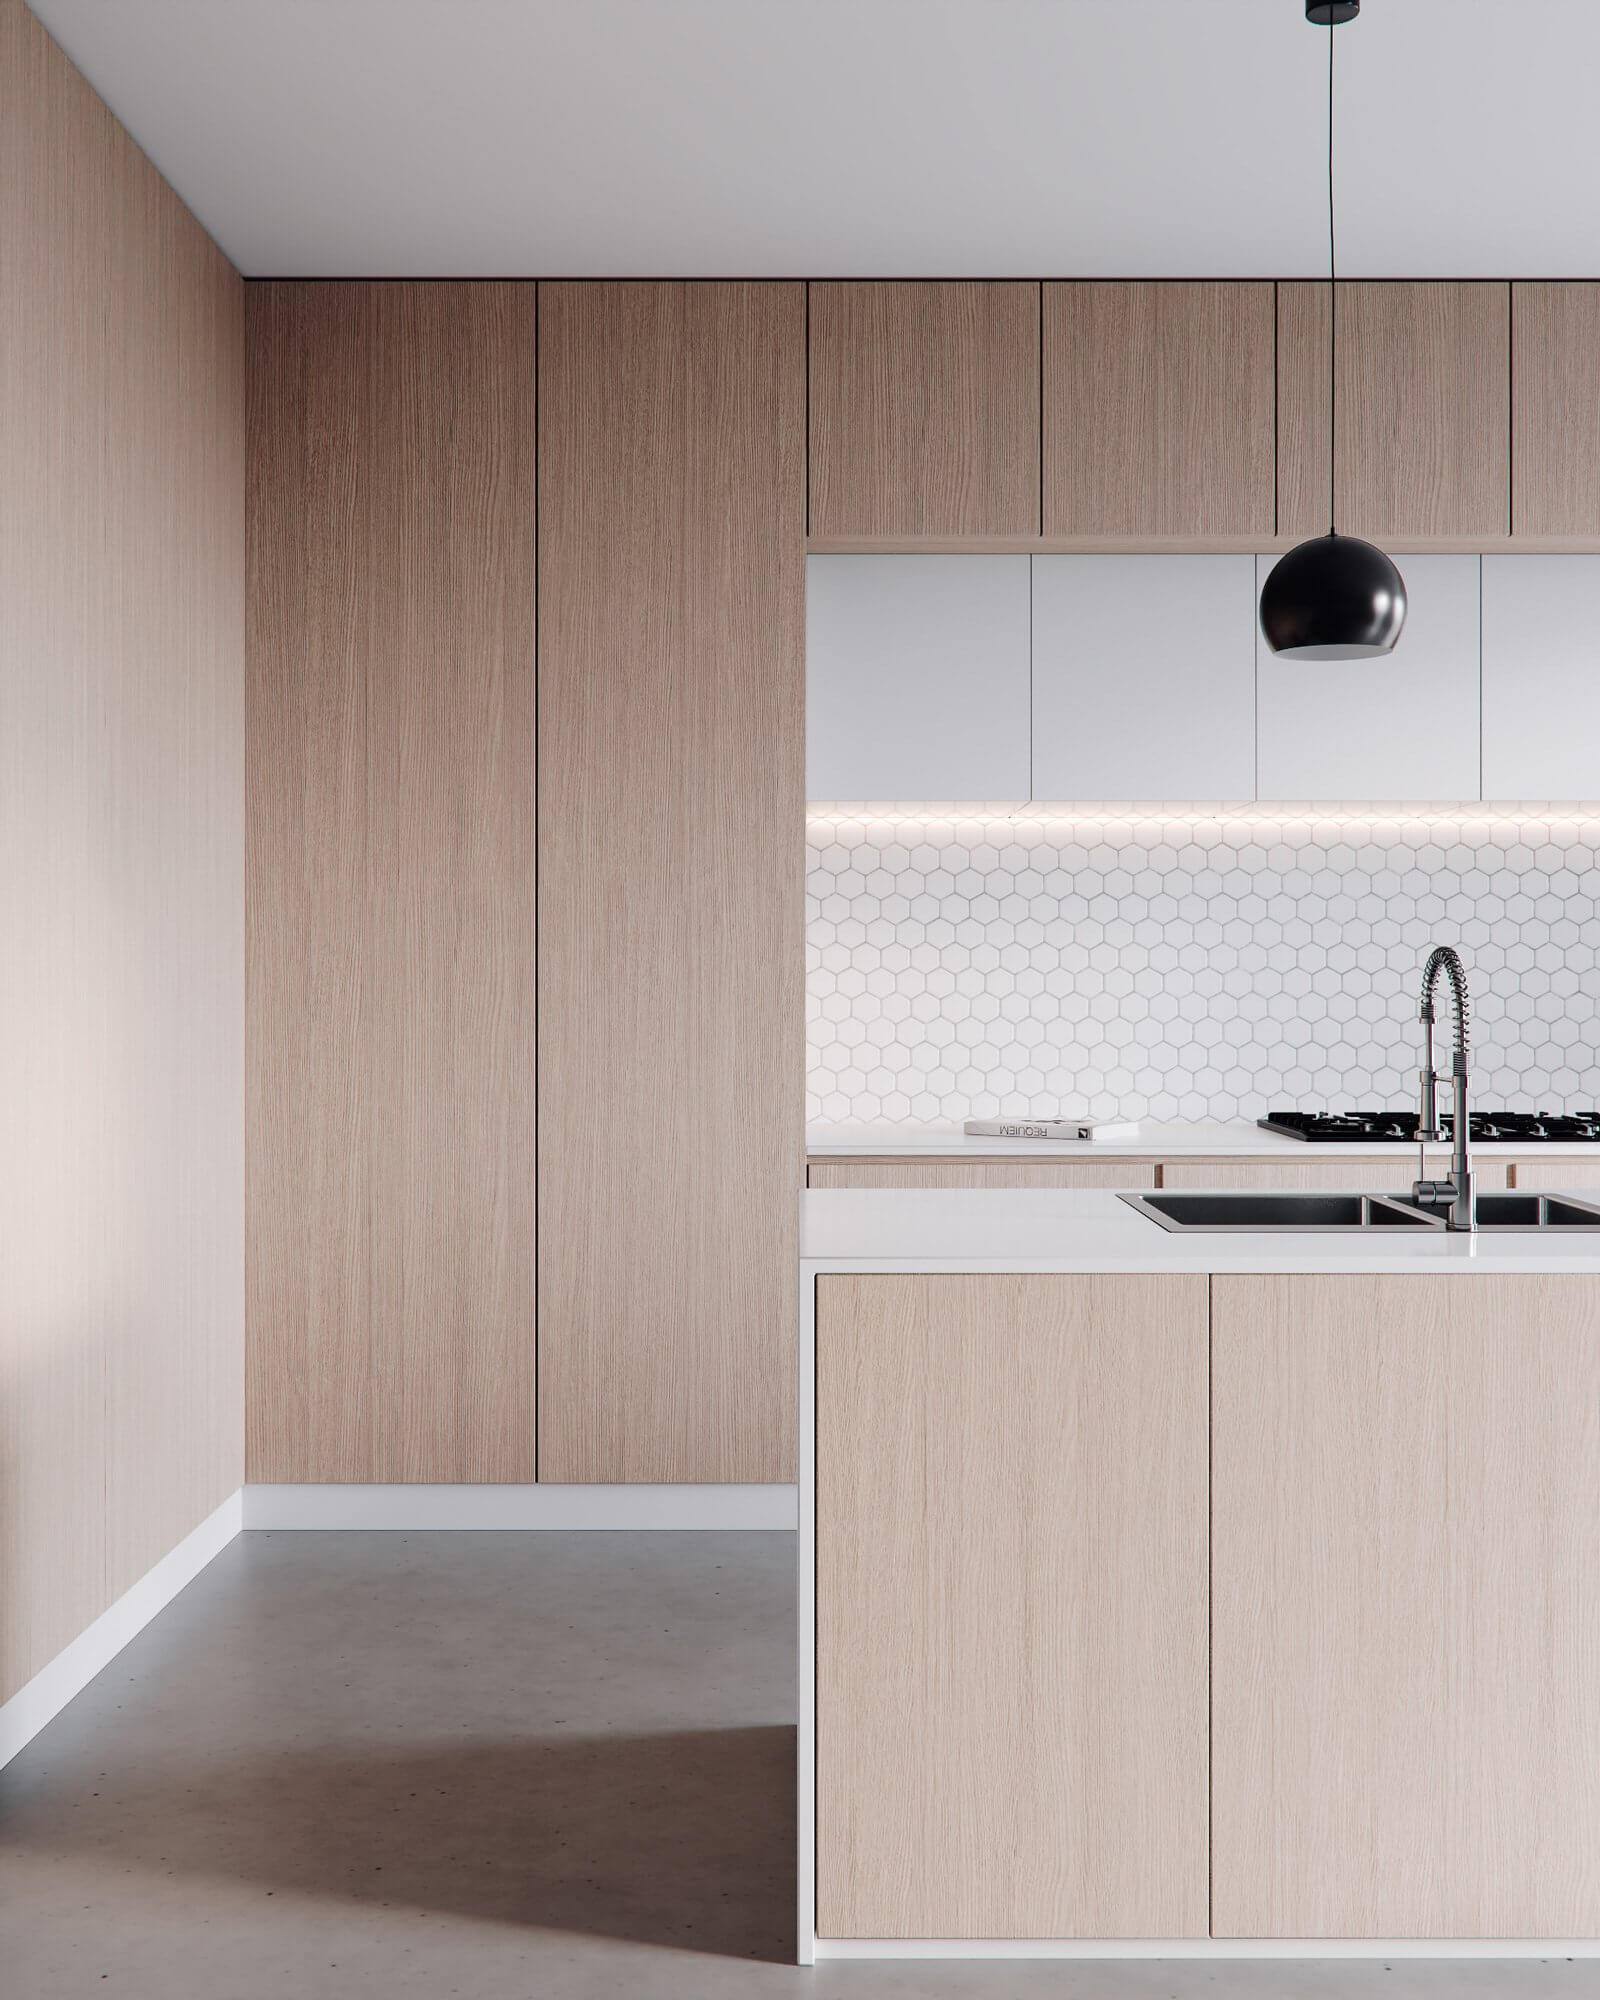 Minimalistic kitchen design wood white 2 - cgi visualisation